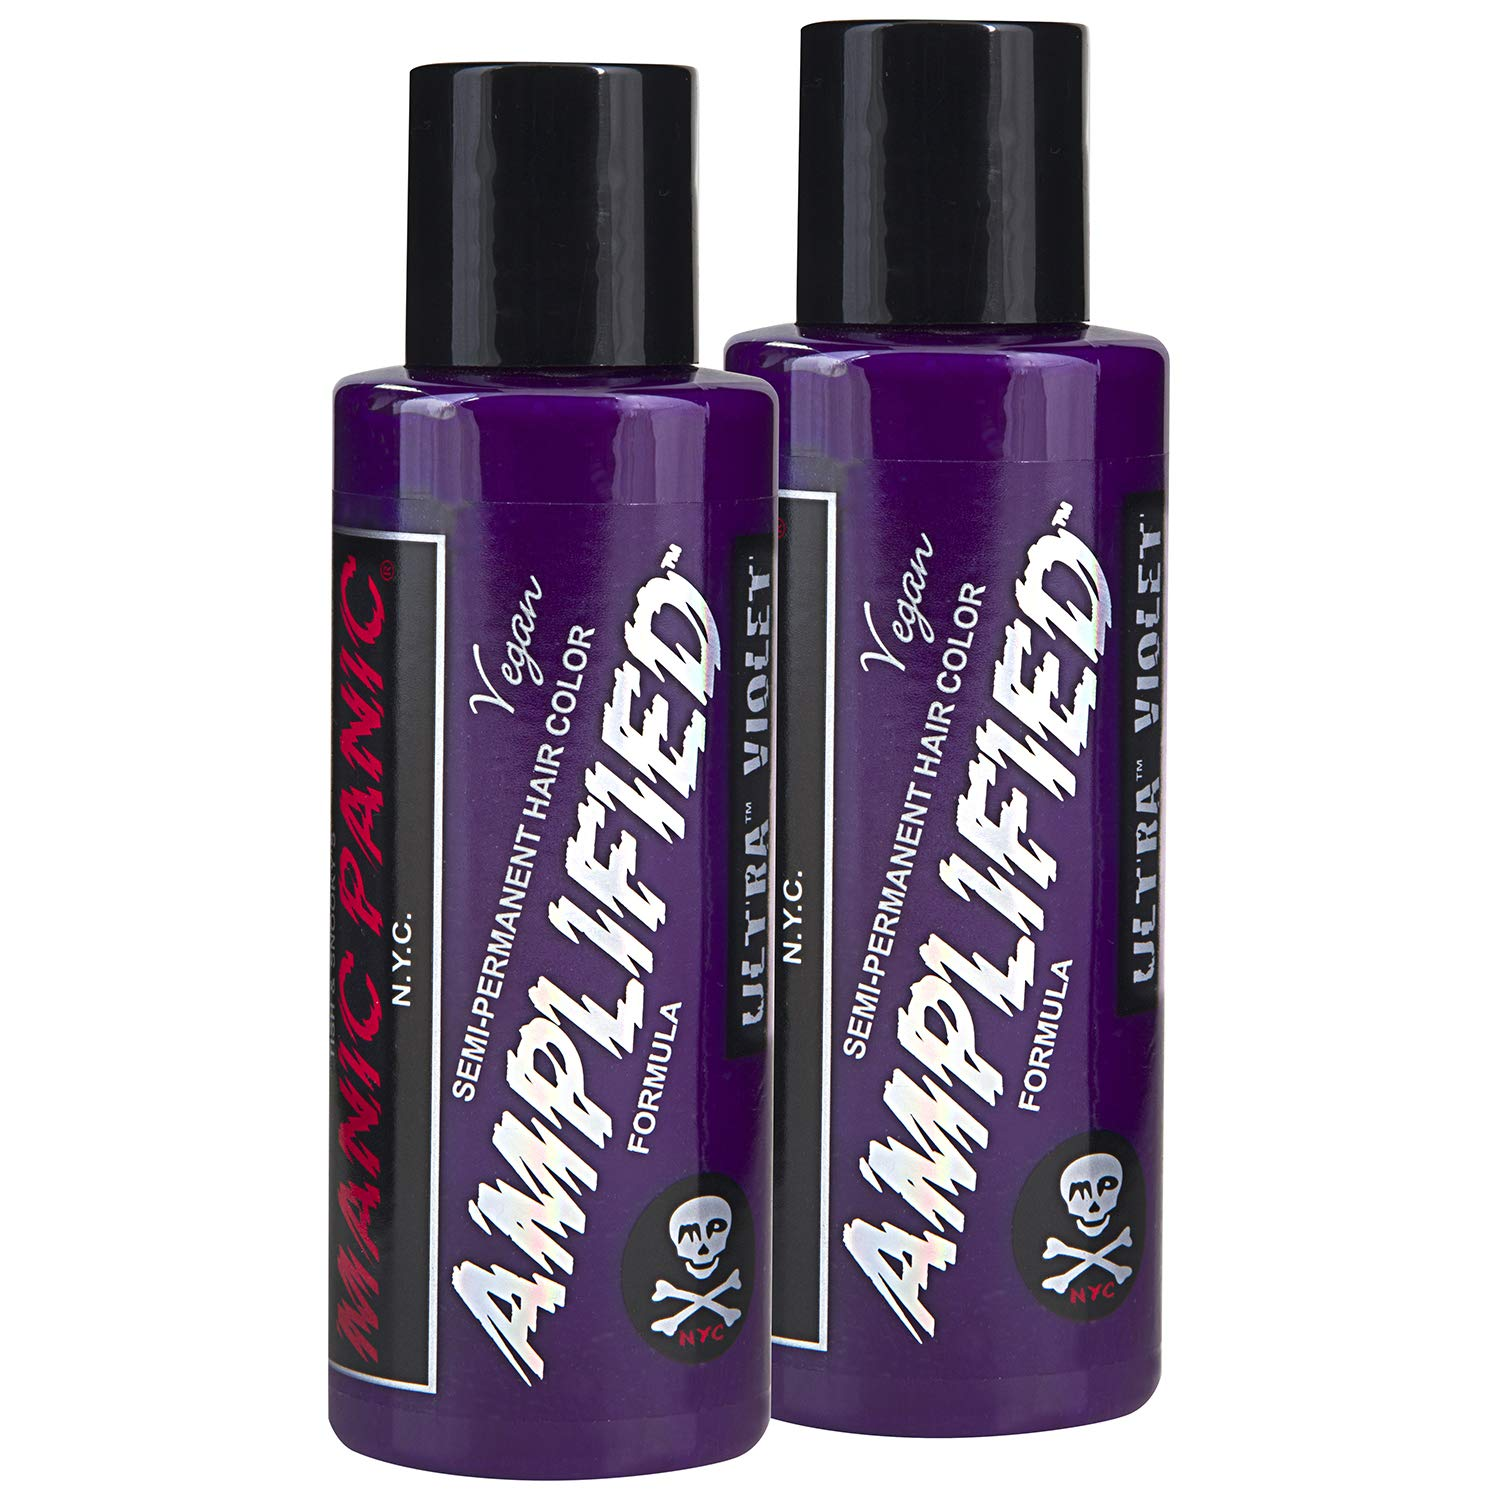 MANIC PANIC Cash special price Ultra Violet Amplified Hair Color Al sold out. 2PK